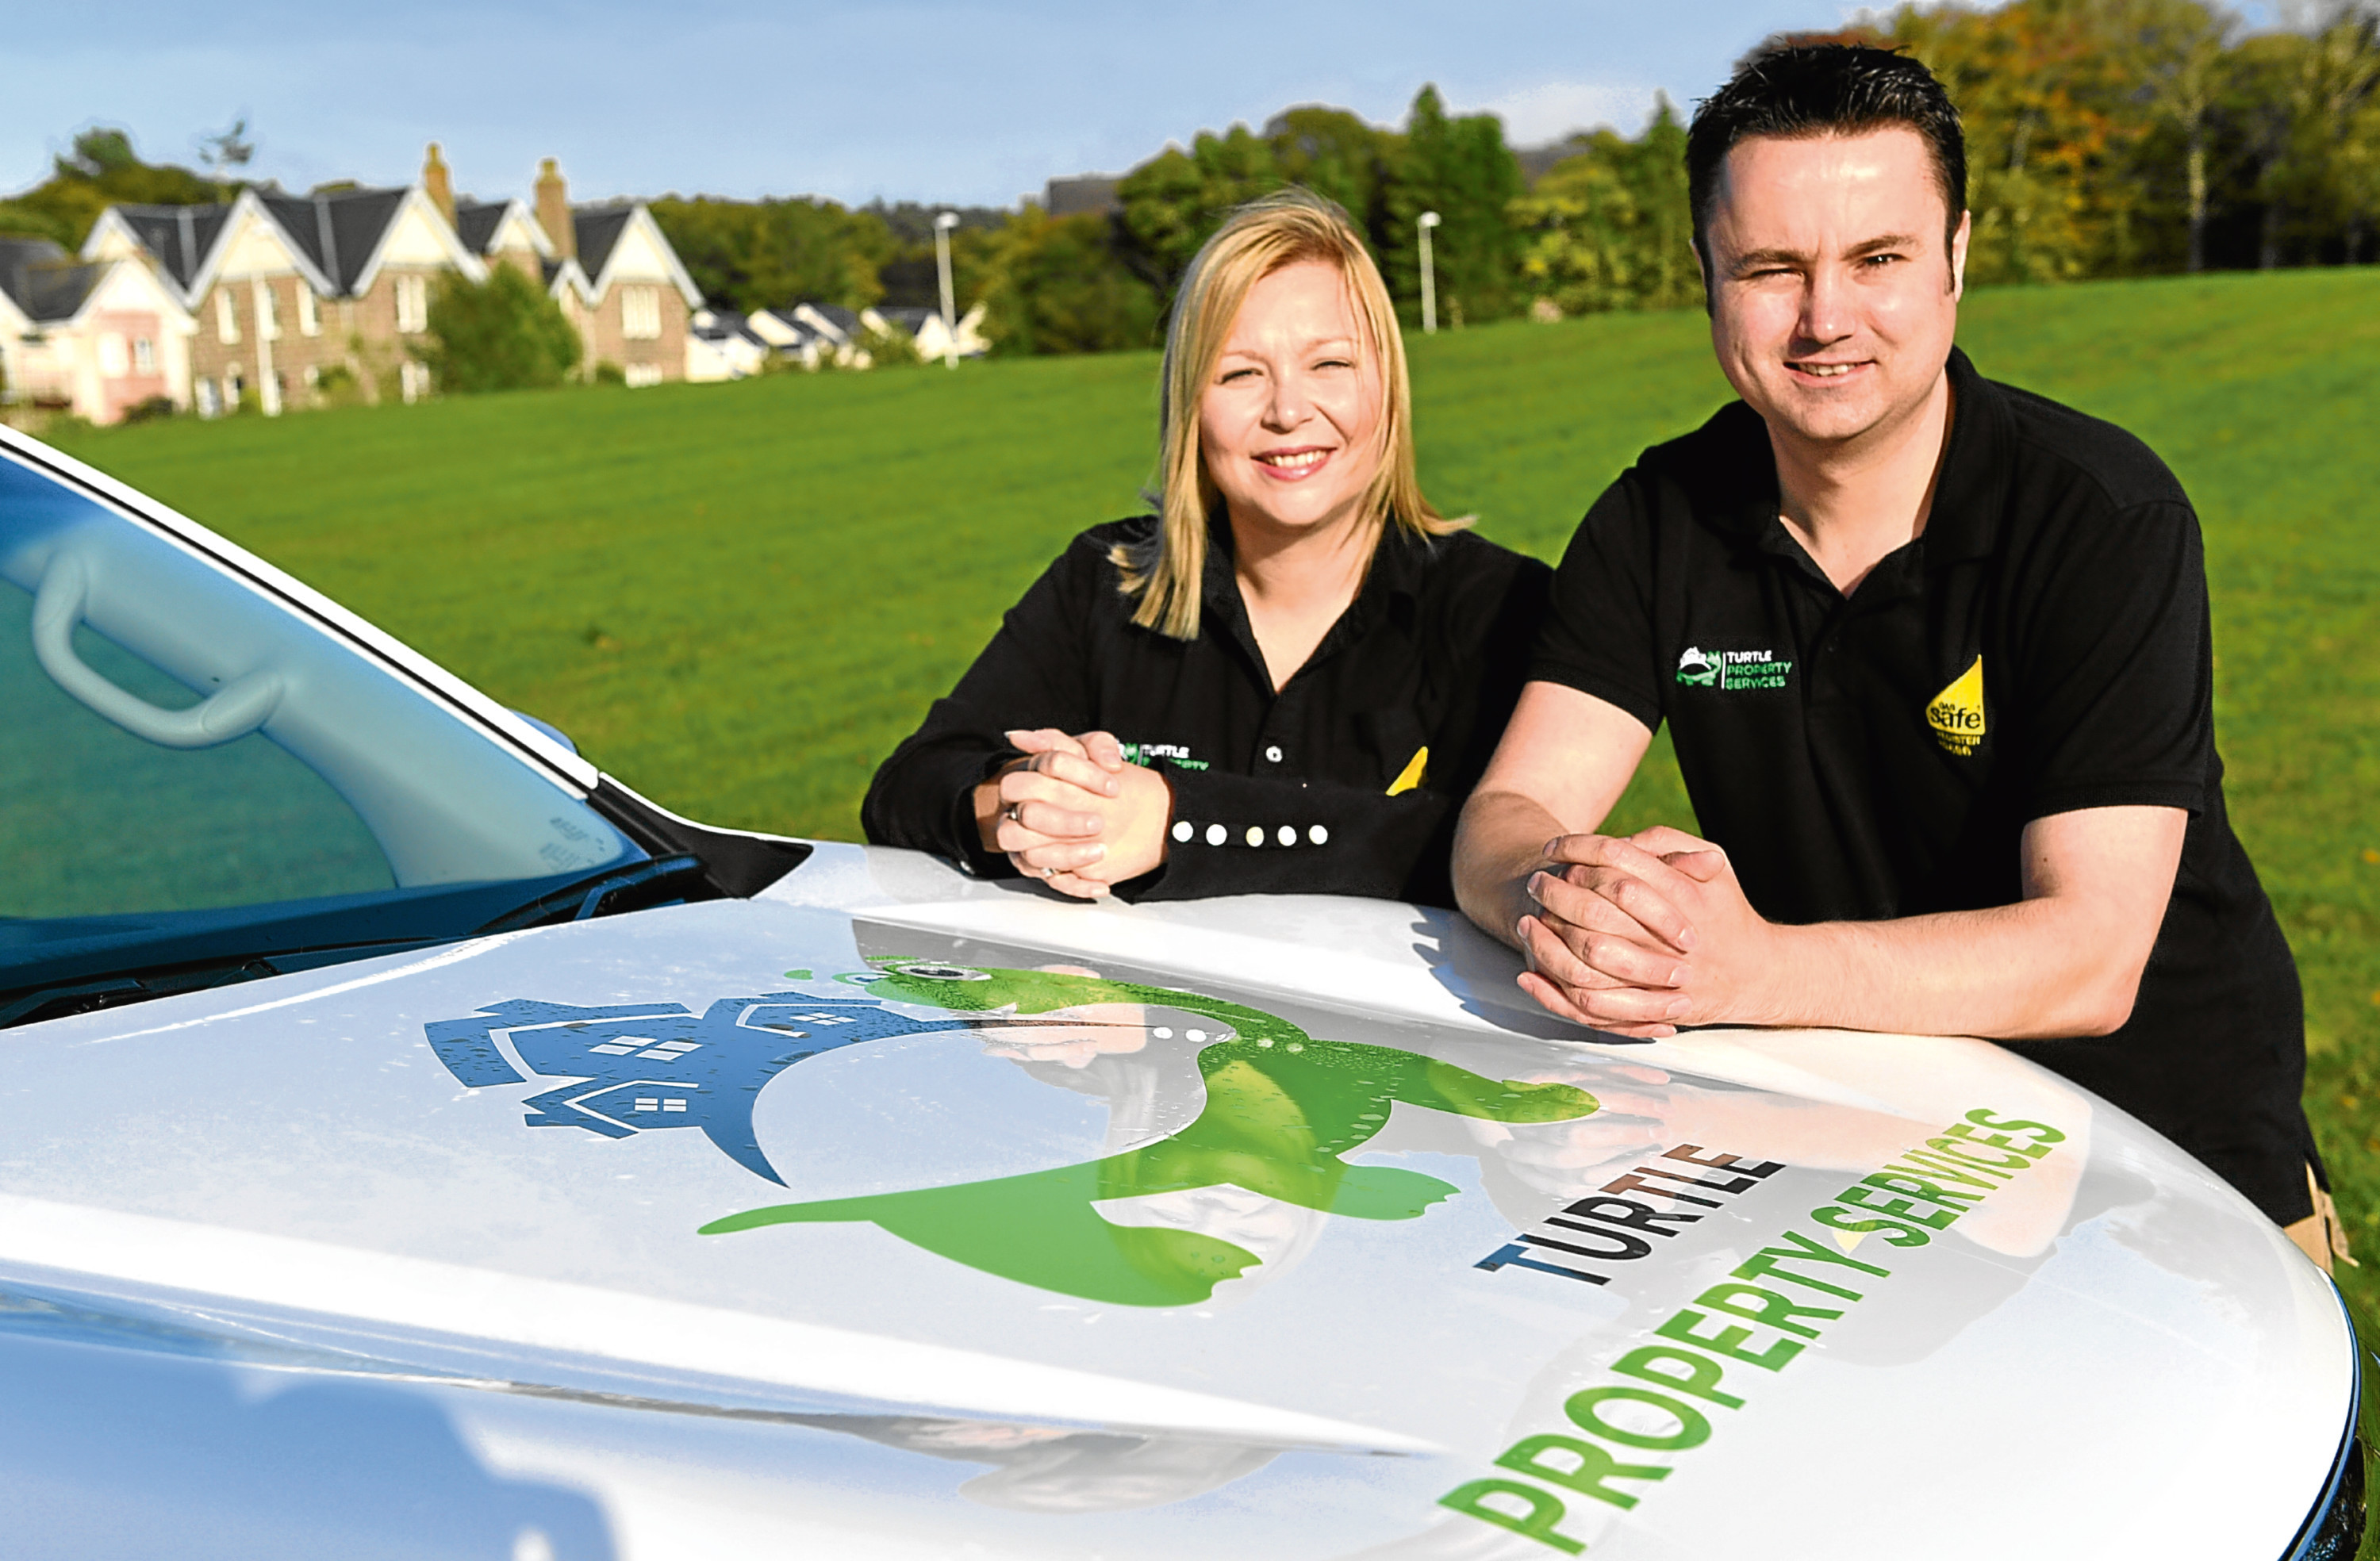 Andrew and Sarah Urquhart of Turtle Property Services. Picture by Kami Thomson.